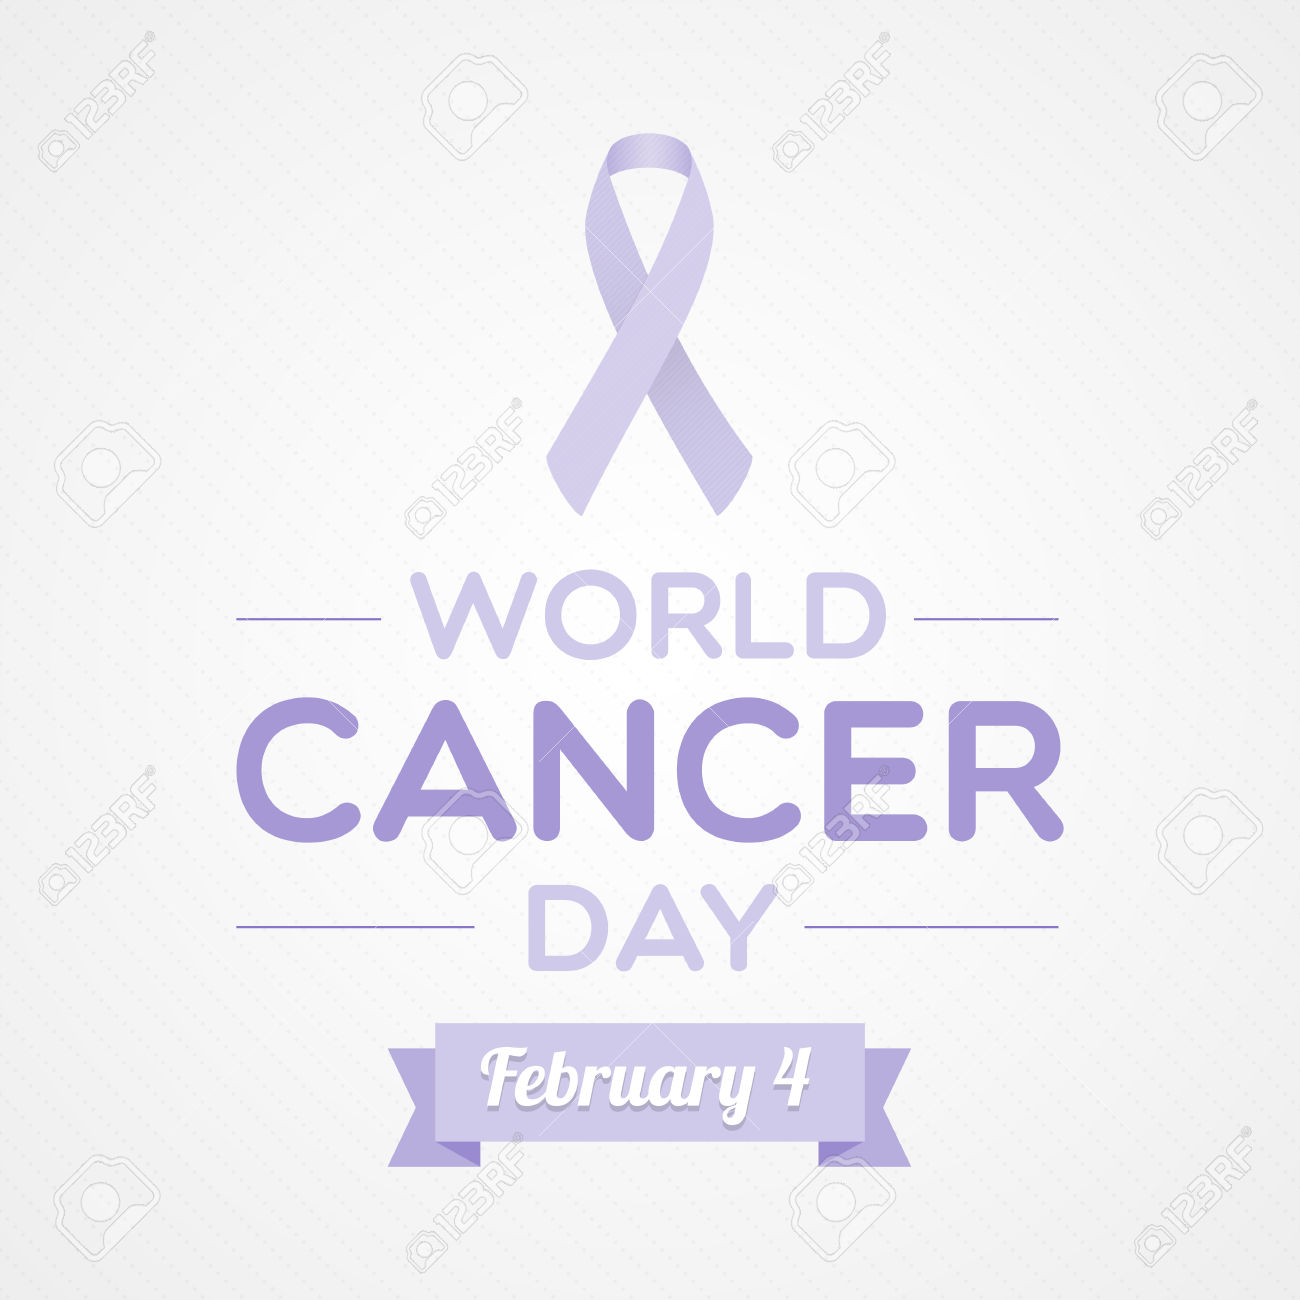 20 Best World Cancer Day Picture Cervical Piercing